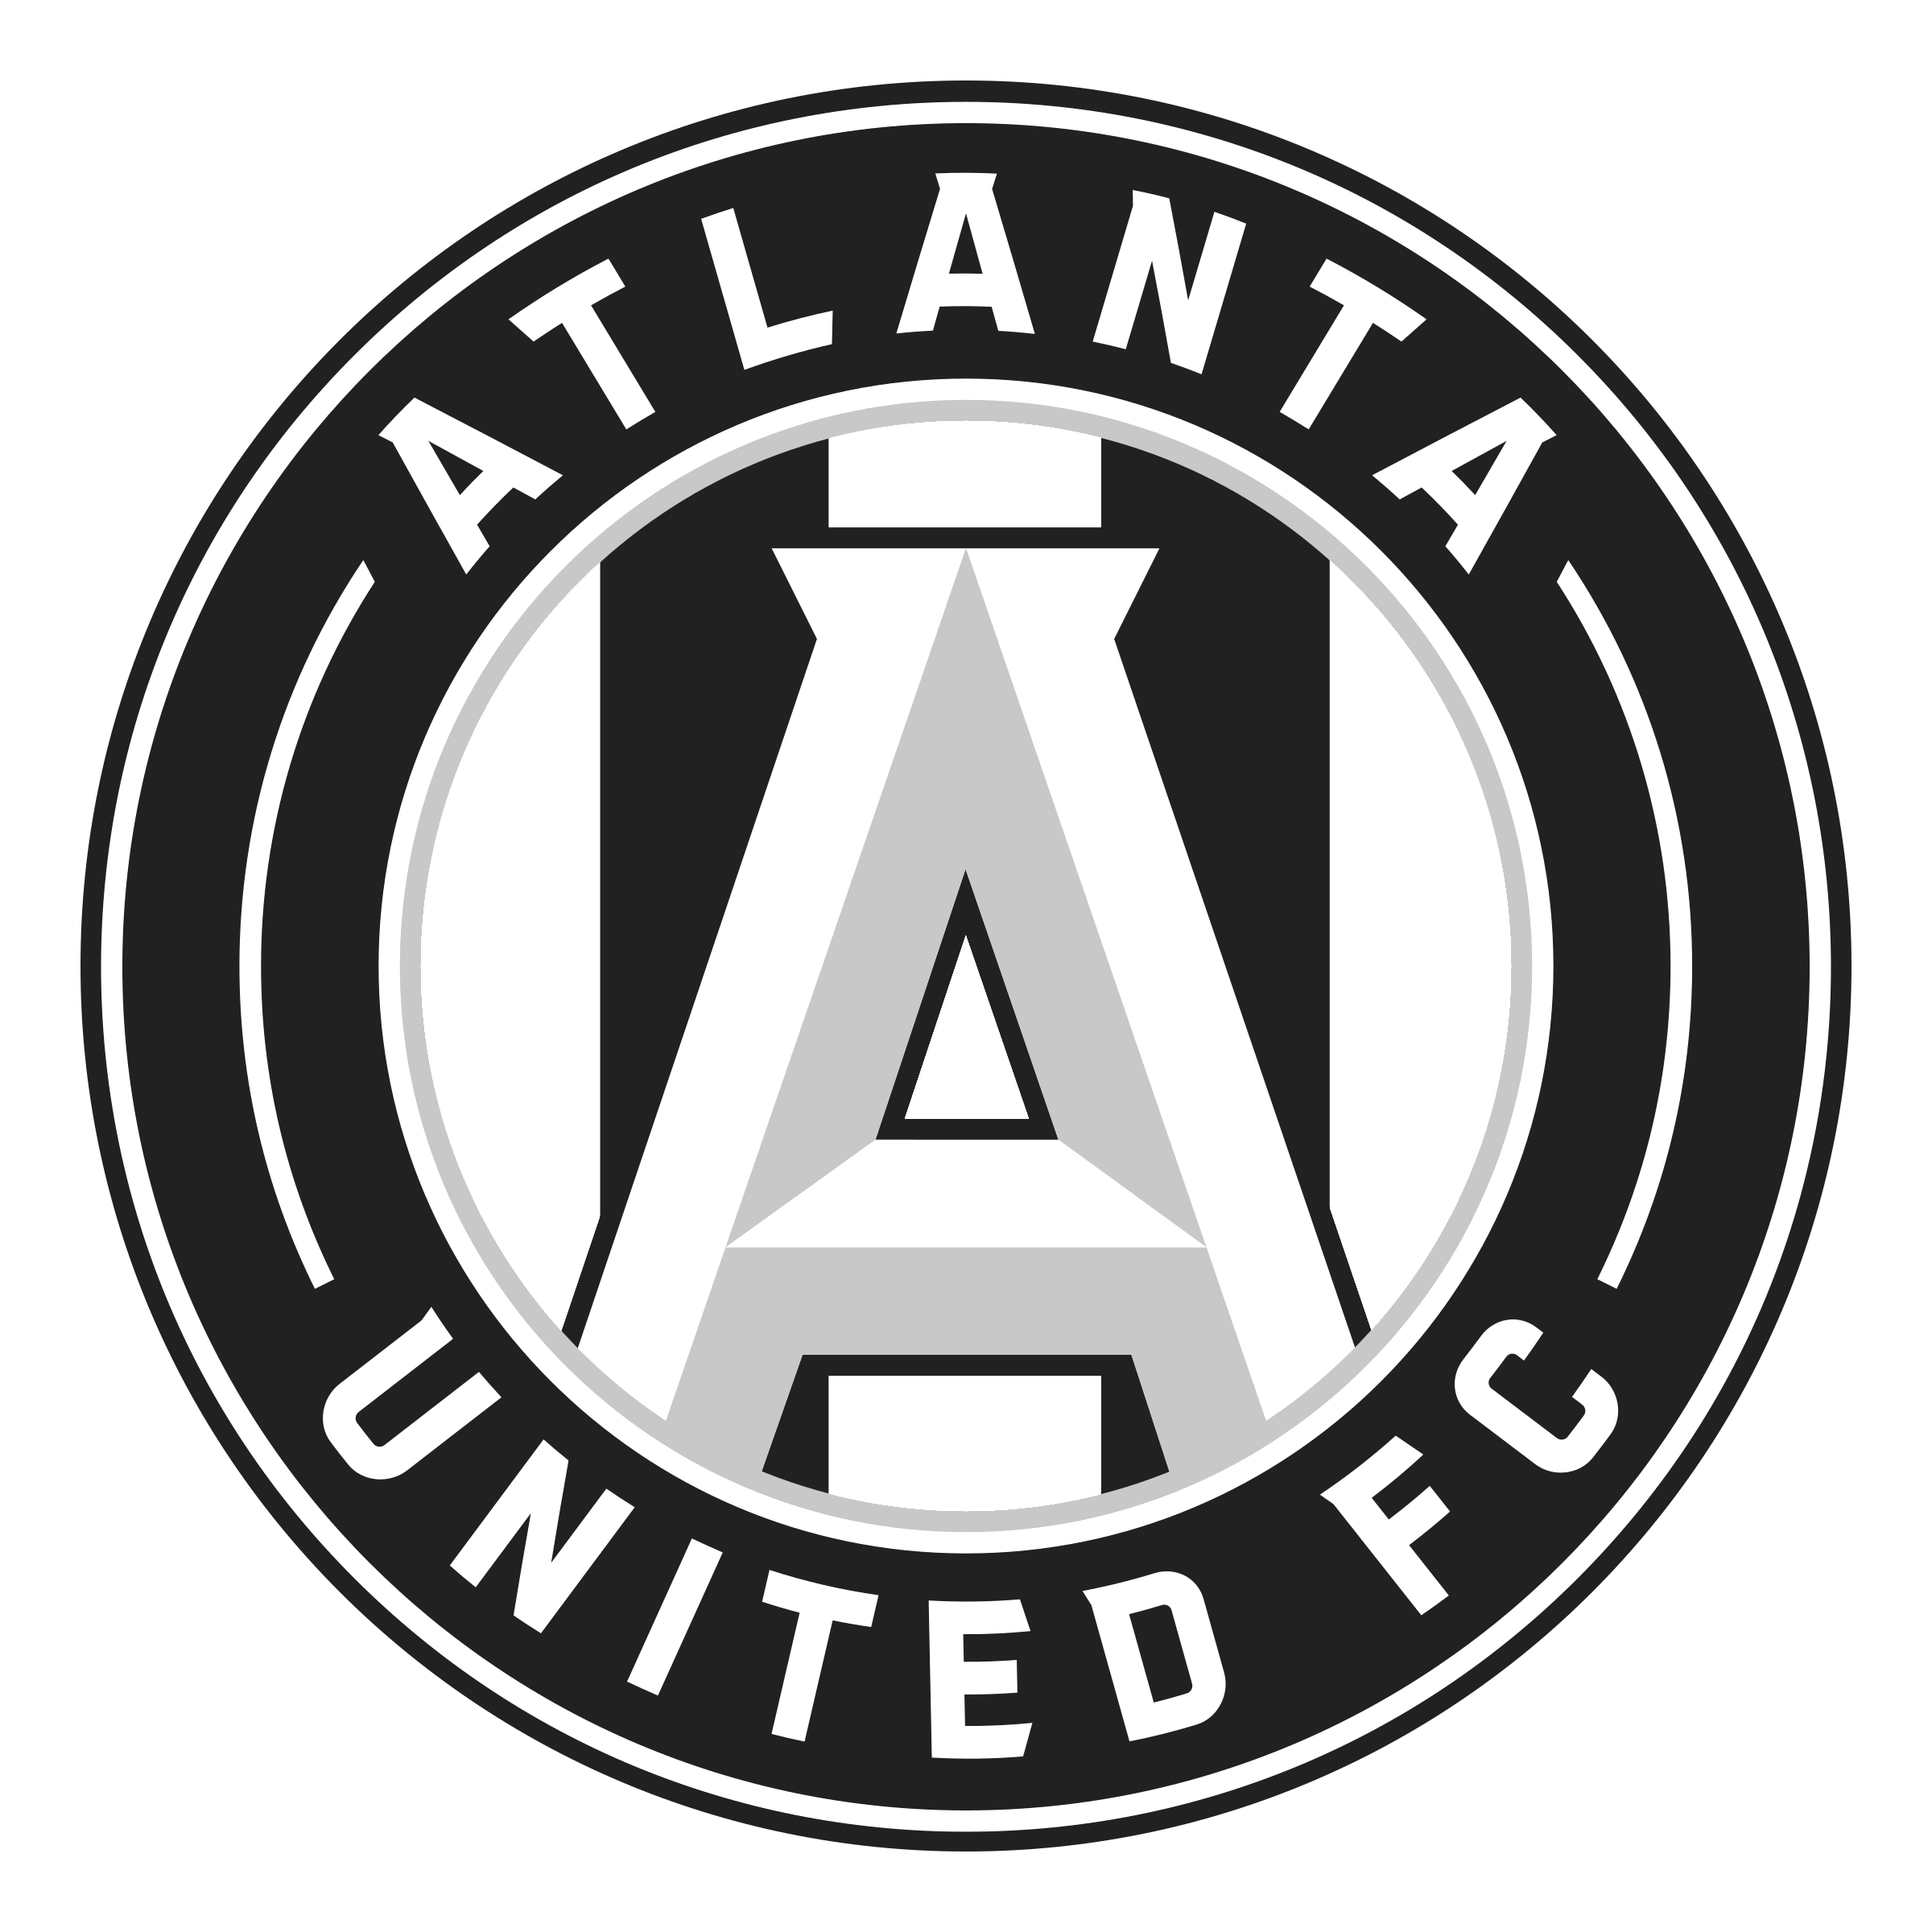 United fc logo png. Atlanta drawing emblem jpg royalty free stock